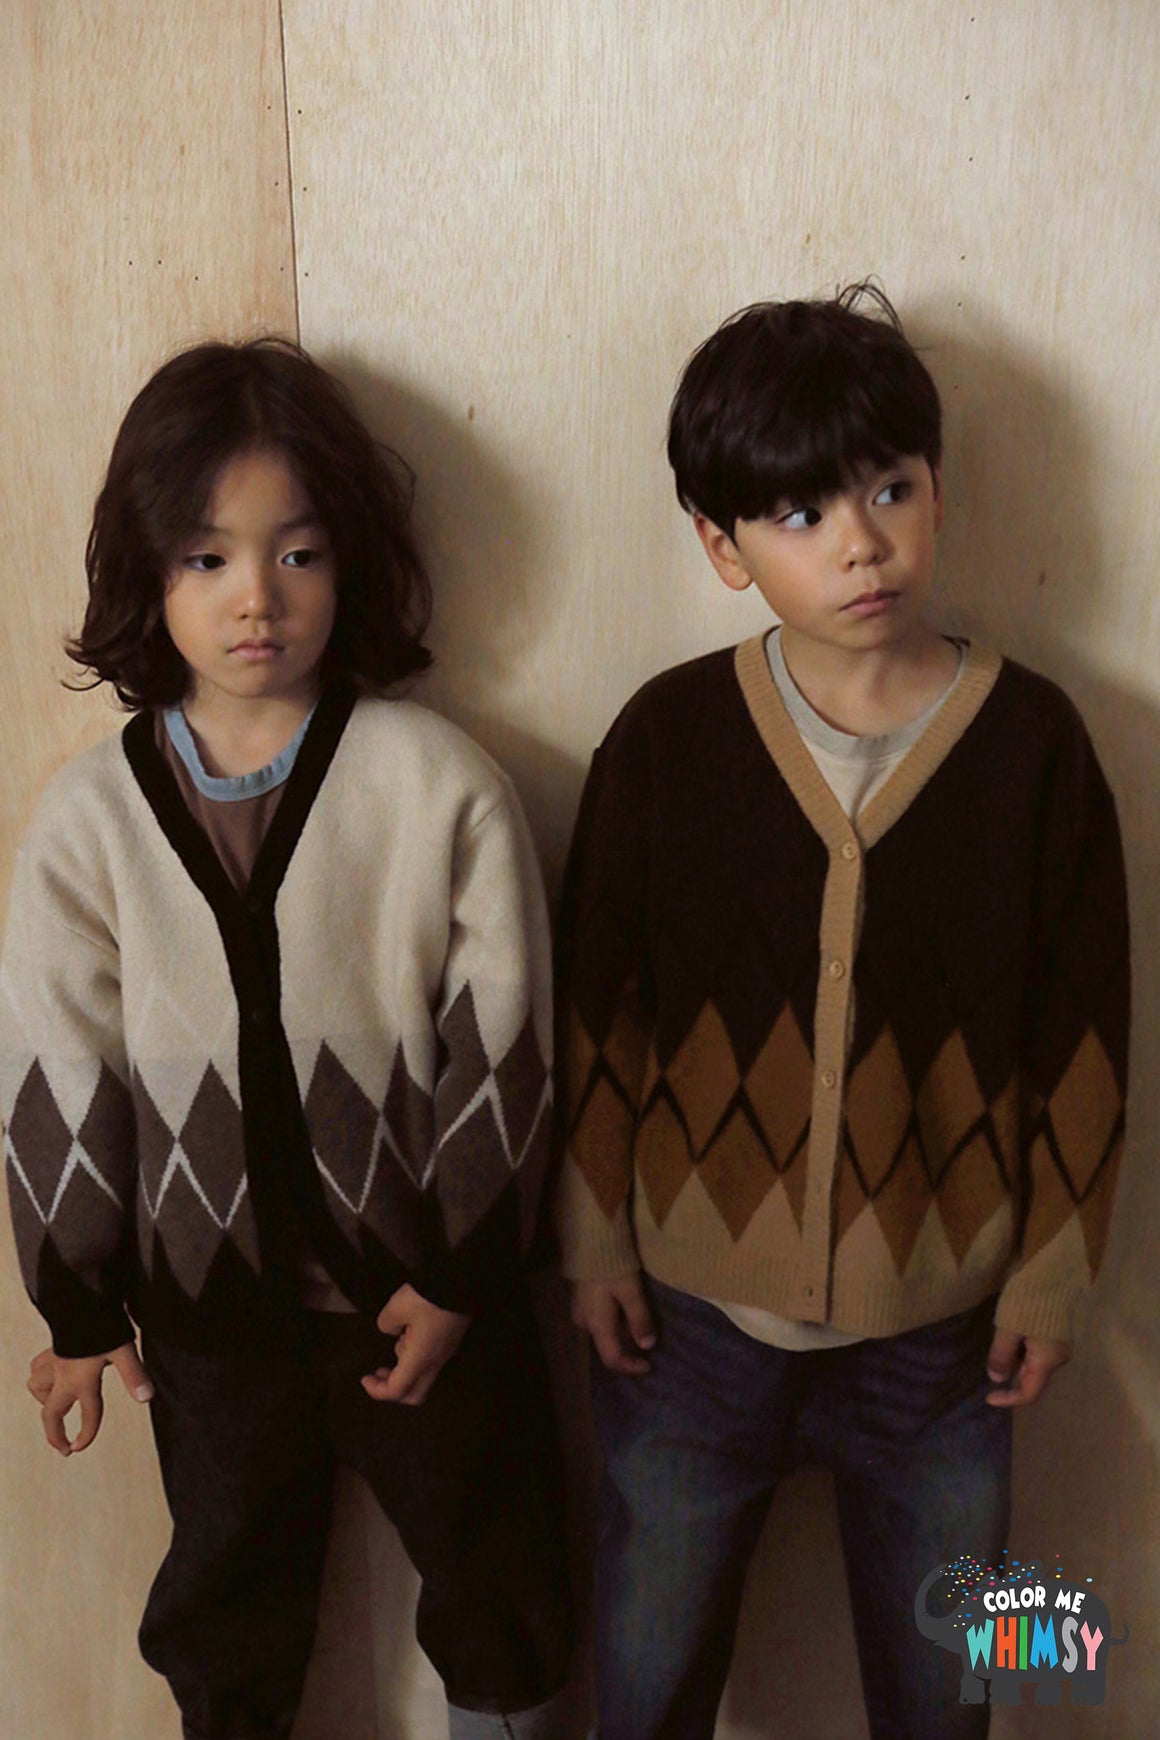 Bien a Bien BN Argyle Cardigan at Color Me WHIMSY hip kid's fashion ethically made in south korea